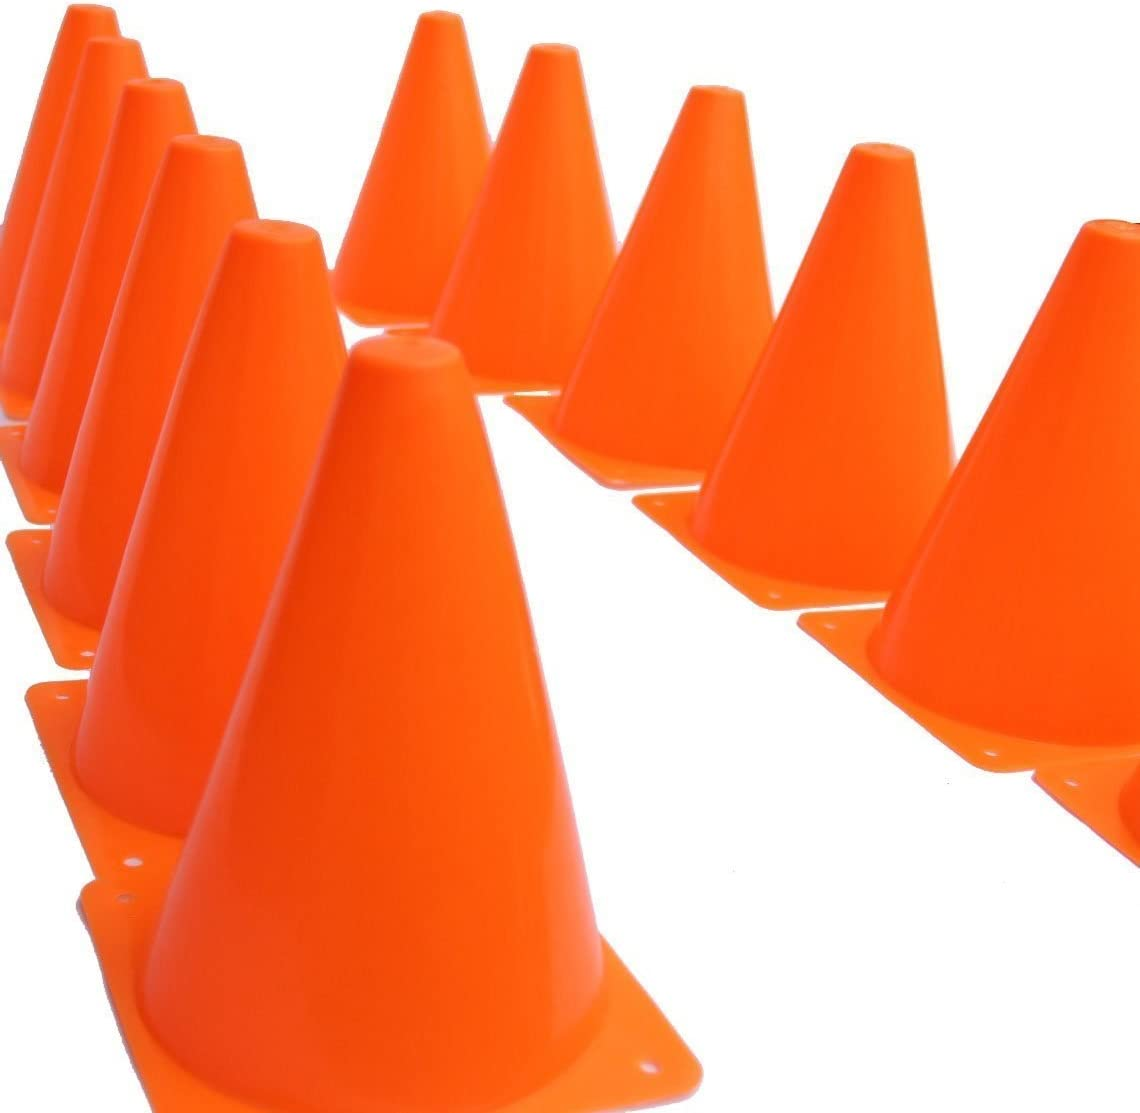 Fun Express Orange Traffic Cones - Set of 12 - Great for Kids Sports, Games and Toys : Sports & Outdoors